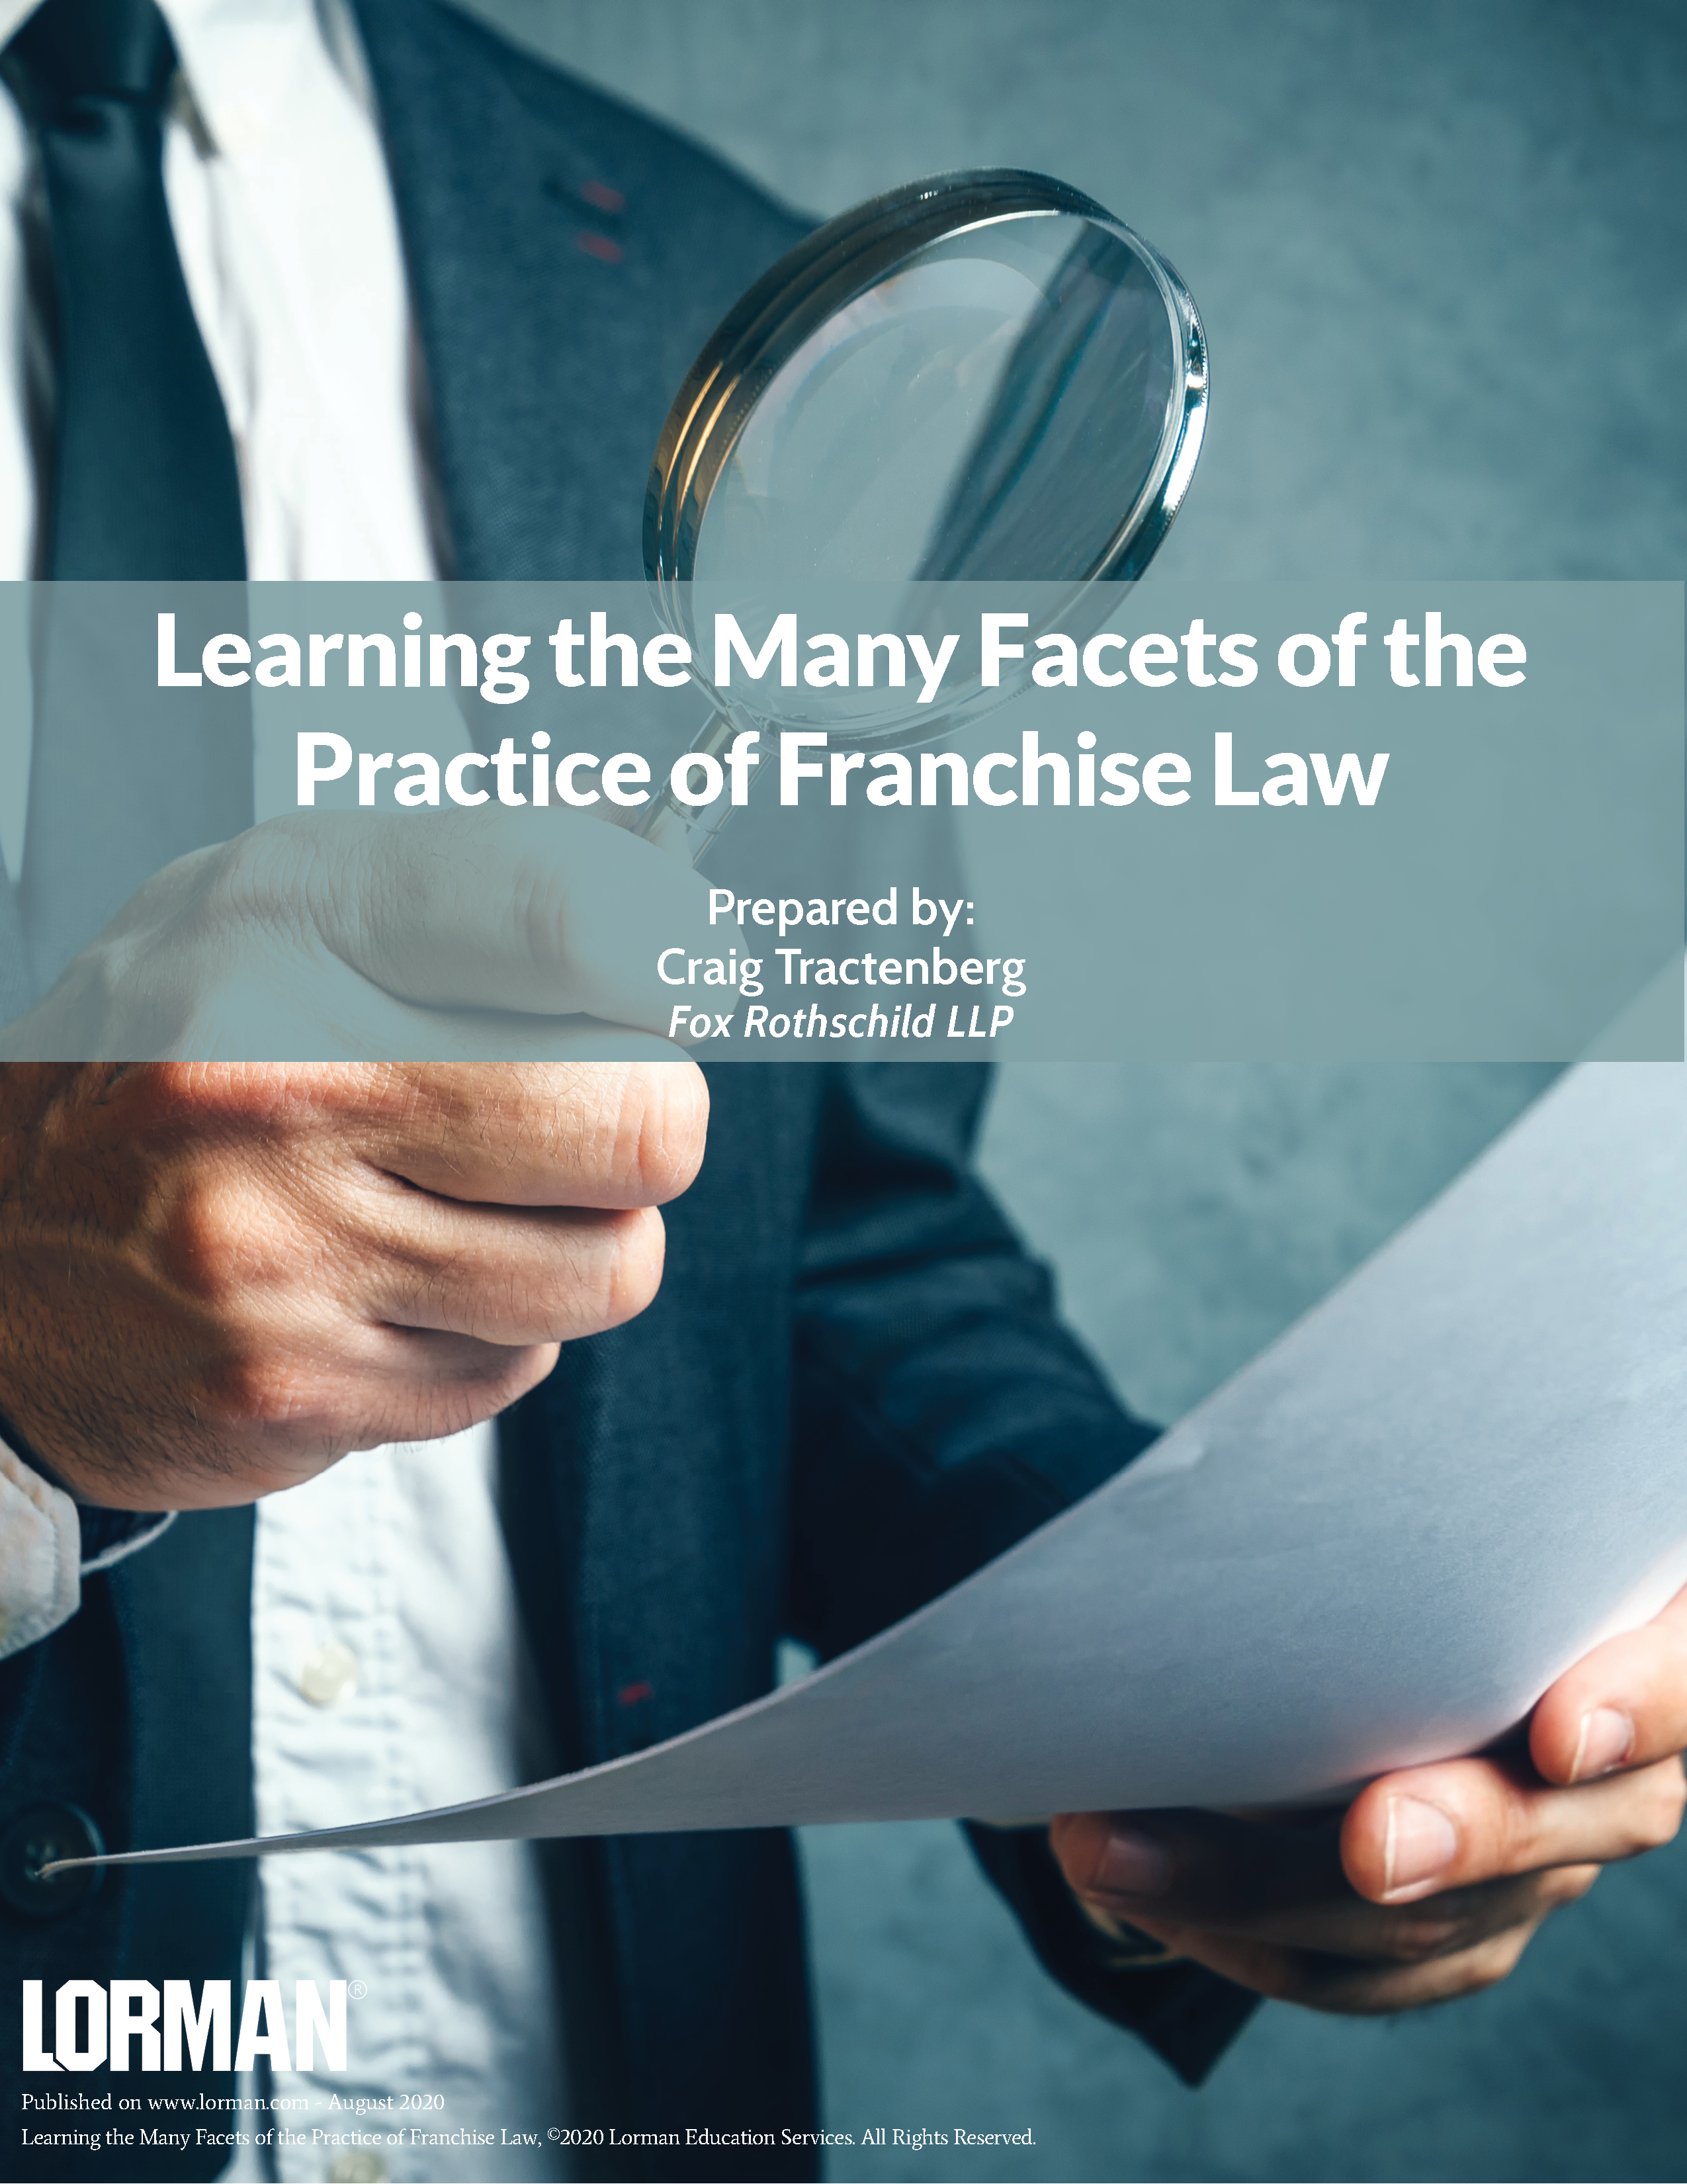 Learning the Many Facets of the Practice of Franchise Law